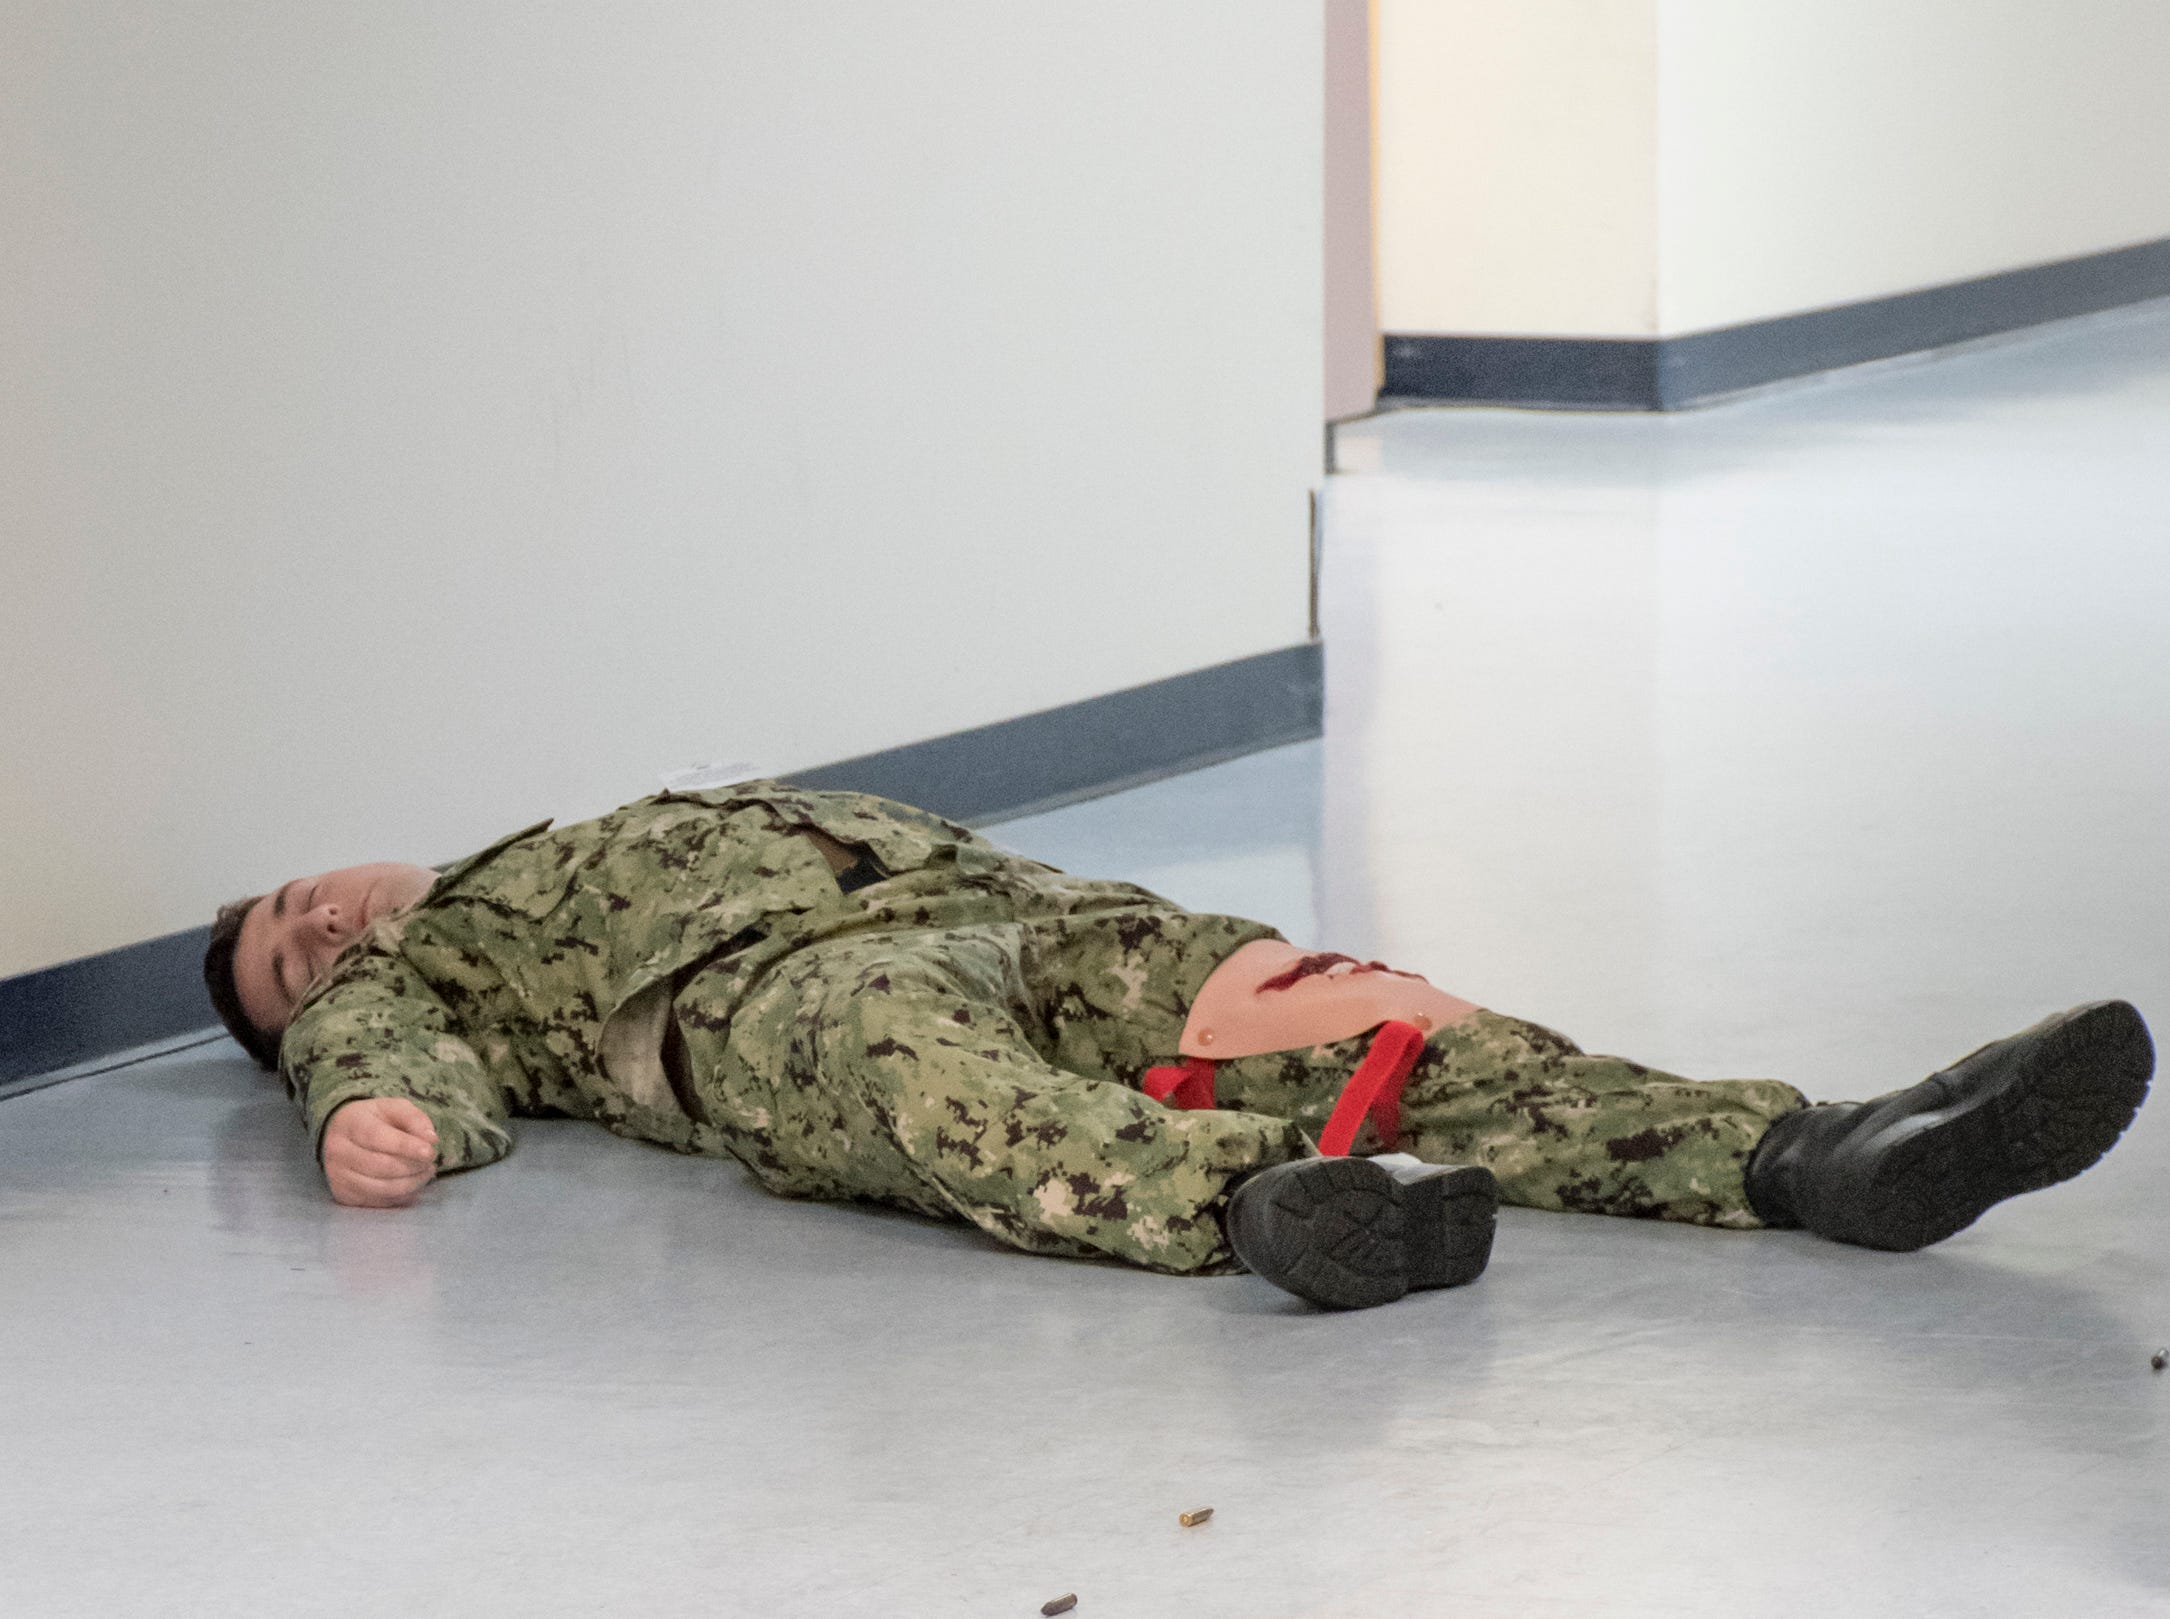 Spent shell casings lead to a sailor acting as a casualty in the Personnel Support Detachment building during the Exercise Solid Curtain-Citadel Shield, an annual security exercise is conducted at NAS Pensacola on Tuesday, February 4, 2019.